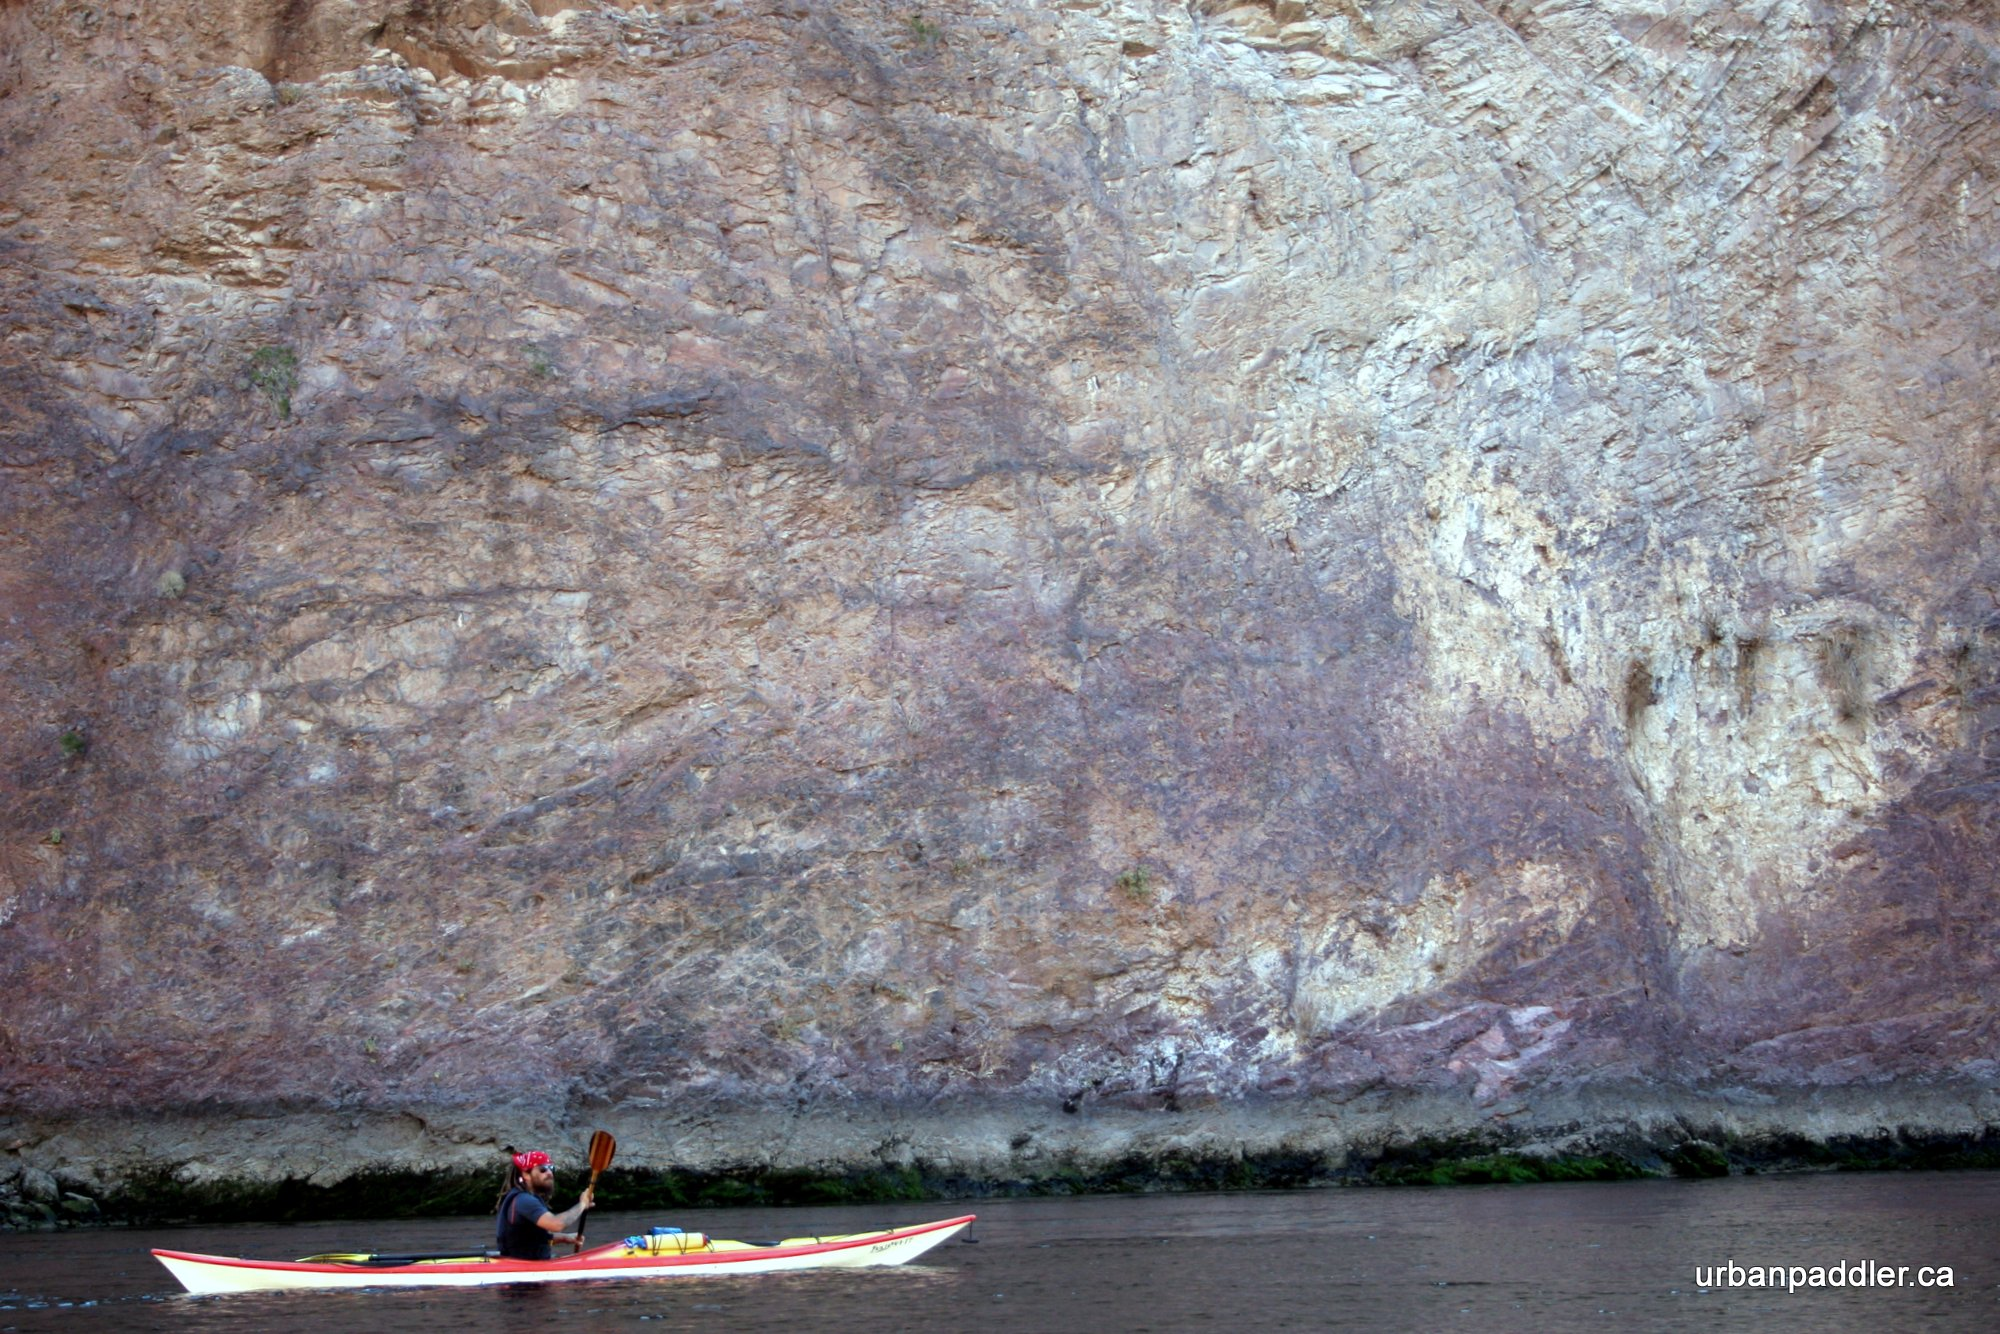 Antonio, our guide, kayaking beside a sheer rock wall in the canyon.